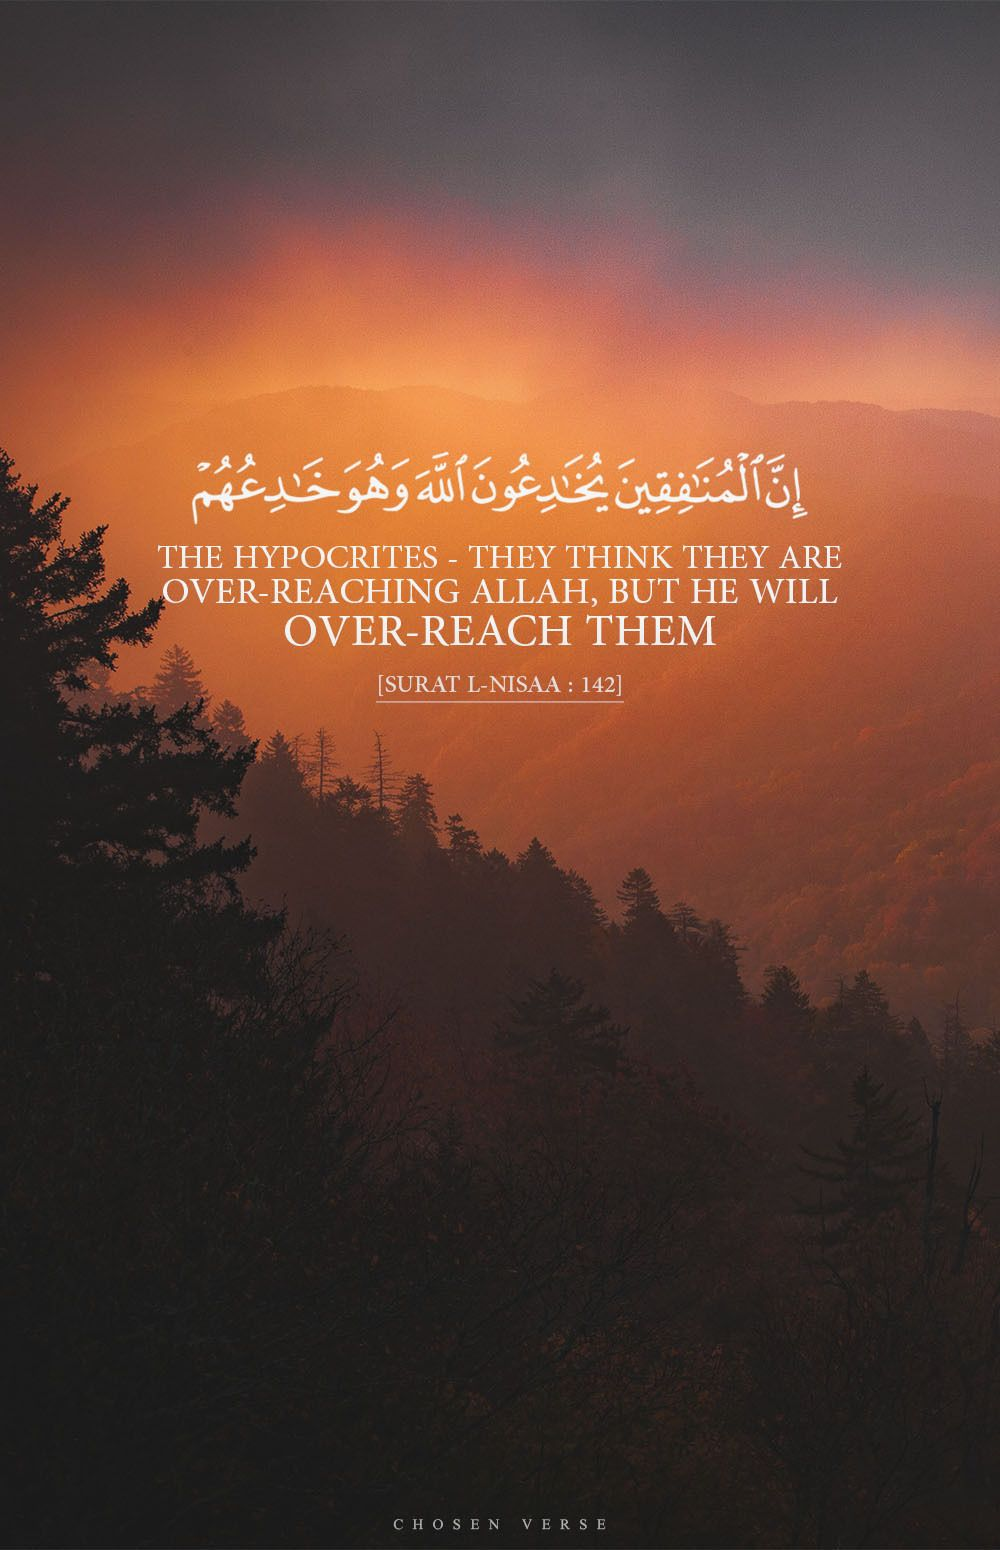 Pin By Mesho On Islamic Quotes Islamic Inspirational Quotes Quran Quotes Islamic Quotes